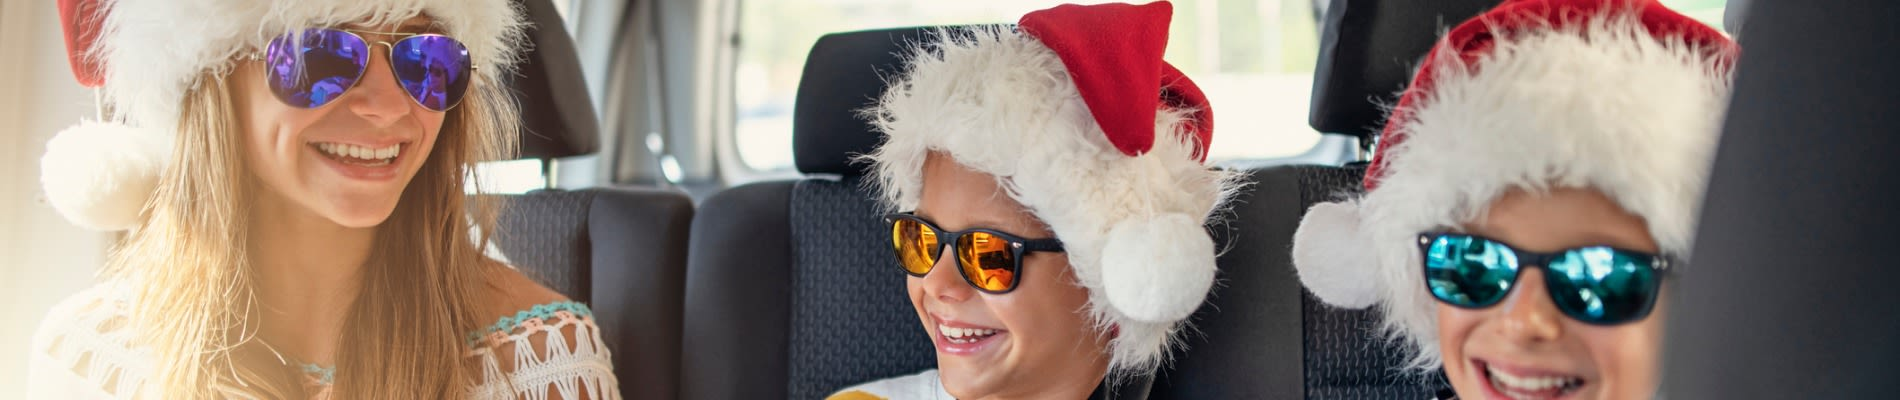 Shine Lawyers | Know your limits: tips for driving on Christmas Day | Shine Lawyers